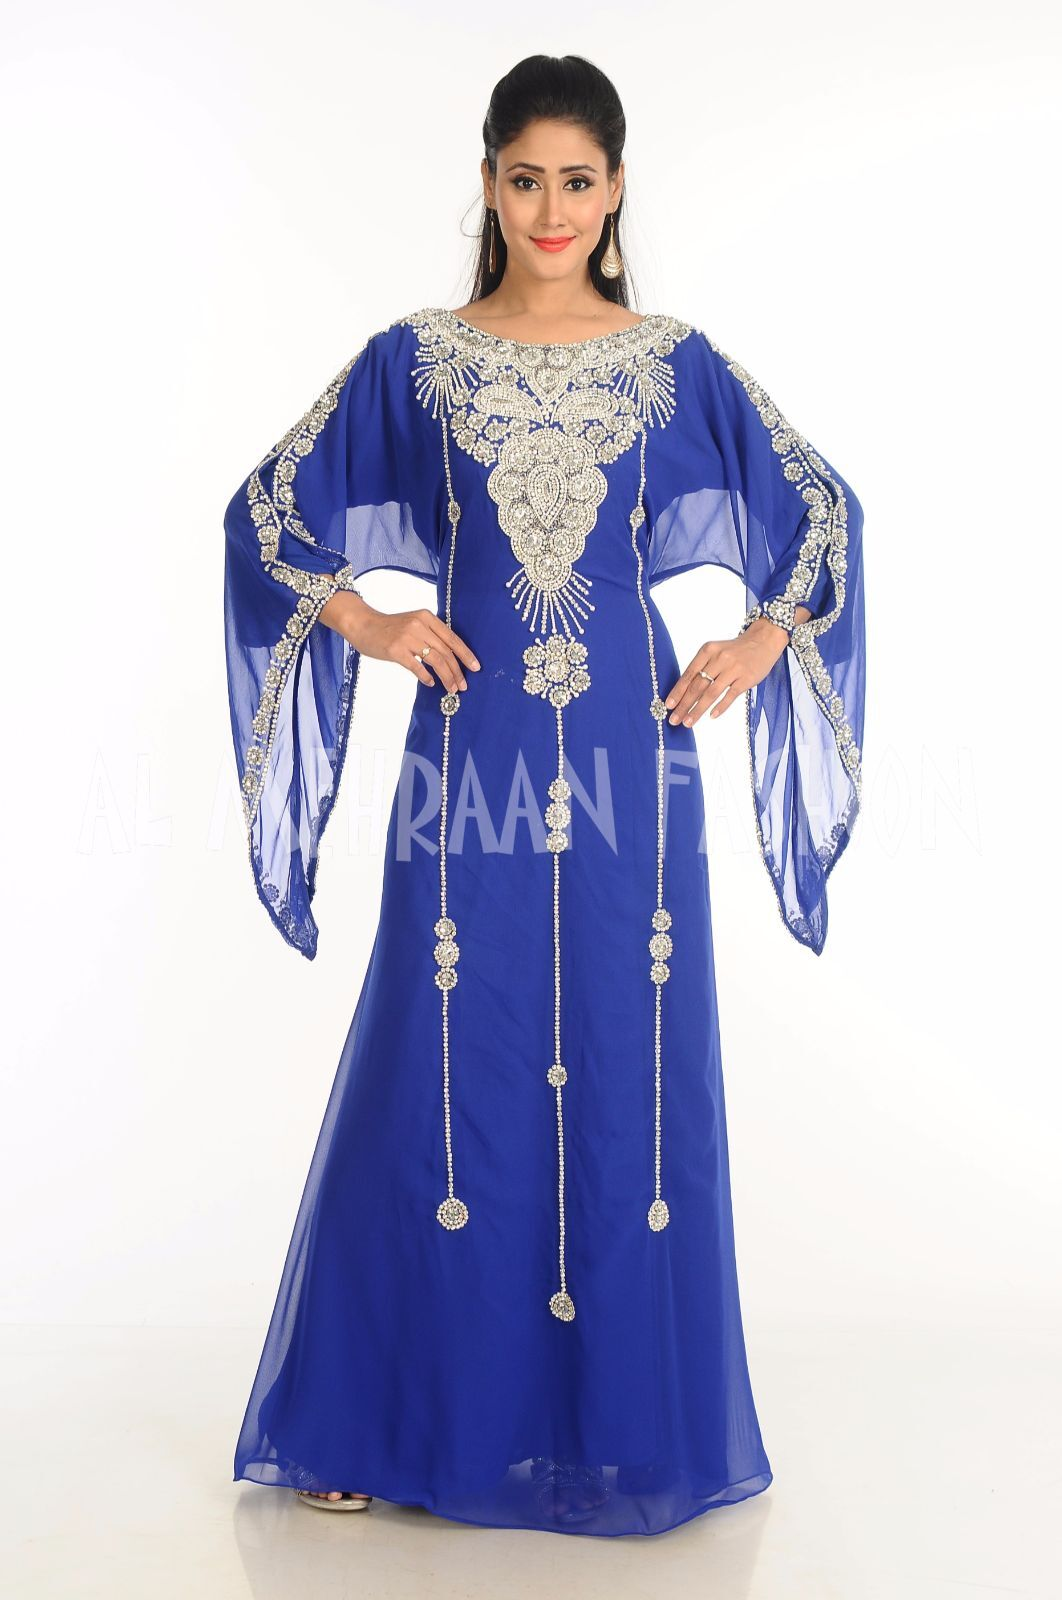 ELEGANT MgoldCCAN FANCY JILBAB JILBAB JILBAB ARABIAN DUBAI TAKSHITA WEDDING GOWN DRESS  180 a0a883